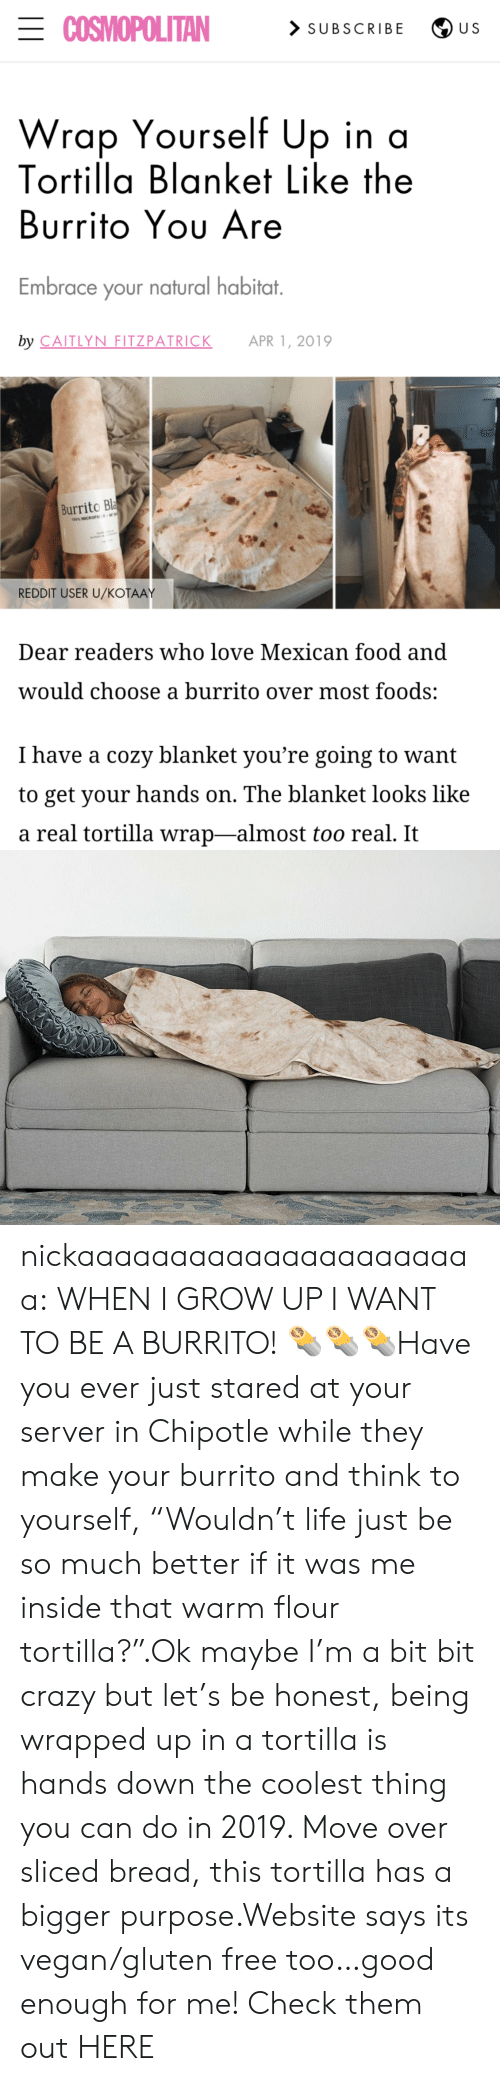 "Chipotle, Crazy, and Food: ECOSMOPOLITAN  > SUBSCRIBE  U S  Wrap Yourself Up in a  Tortilla Blanket Like the  Burrito Yου Are  Embrace your natural habitat.  by CAITLYN FITZPATRICK  APR 1, 2019  Burrito Bla  100% MICROFE  REDDIT USER U/KOŤAAY  Dear readers who love Mexican food and  would choose a burrito over most foods:  I have a cozy blanket you're going to want  to get your hands on. The blanket looks like  a real tortilla wrap-almost too real. It nickaaaaaaaaaaaaaaaaaaaaaa:  WHEN I GROW UP I WANT TO BE A BURRITO! 🌯🌯🌯Have you ever just stared at your server in Chipotle while they make your burrito and think to yourself, ""Wouldn't life just be so much better if it was me inside that warm flour tortilla?"".Ok maybe I'm a bit bit crazy but let's be honest, being wrapped up in a tortilla is hands down the coolest thing you can do in 2019. Move over sliced bread, this tortilla has a bigger purpose.Website says its vegan/gluten free too…good enough for me! Check them out HERE"